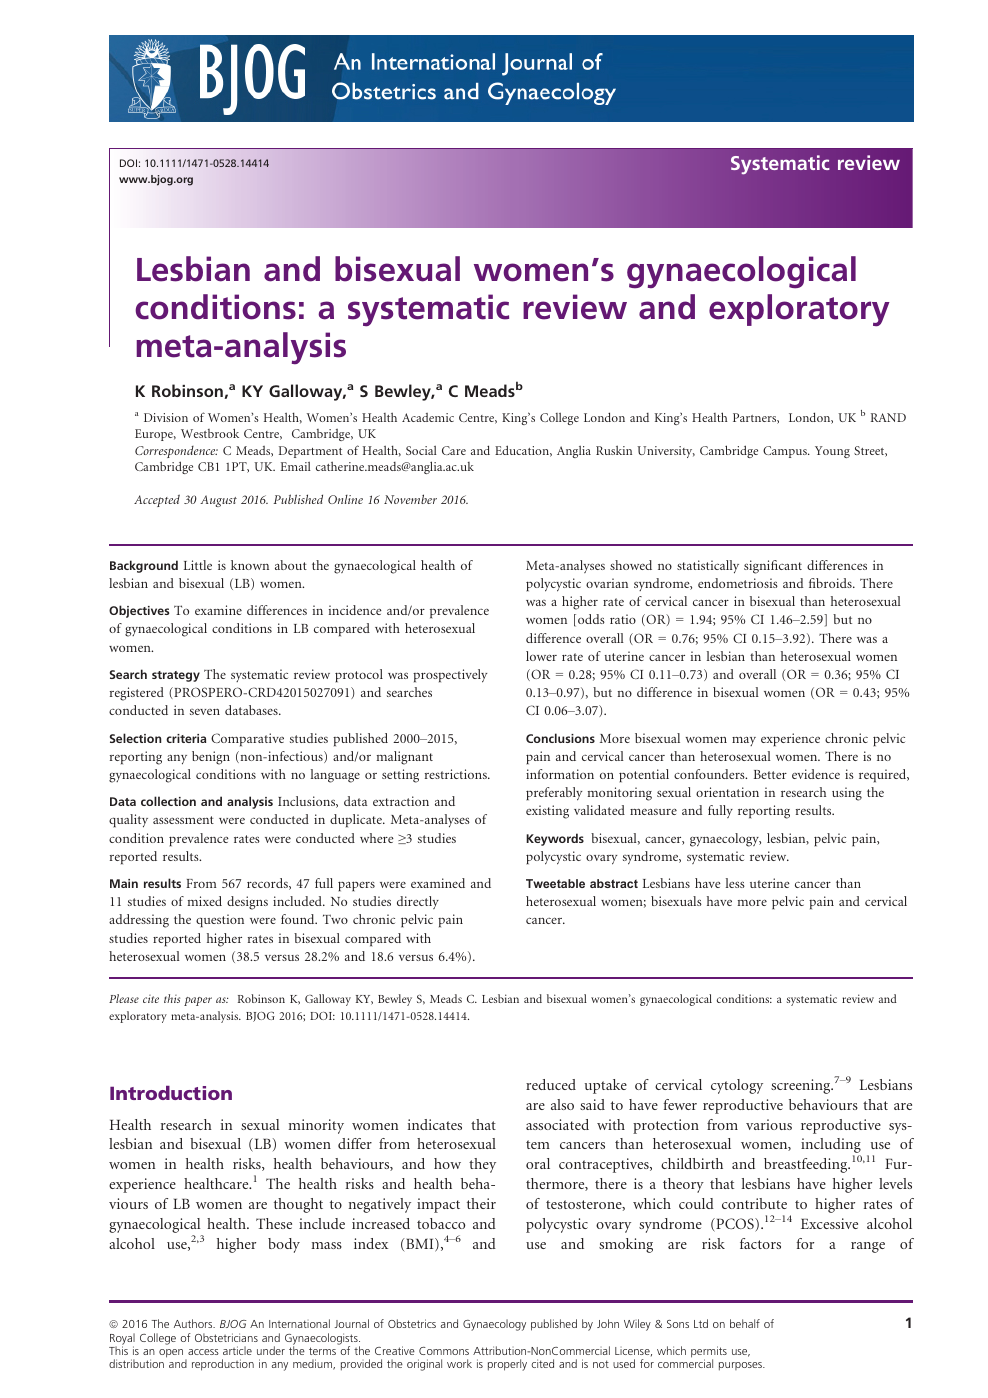 Lesbian and bisexual women's gynaecological conditions: a